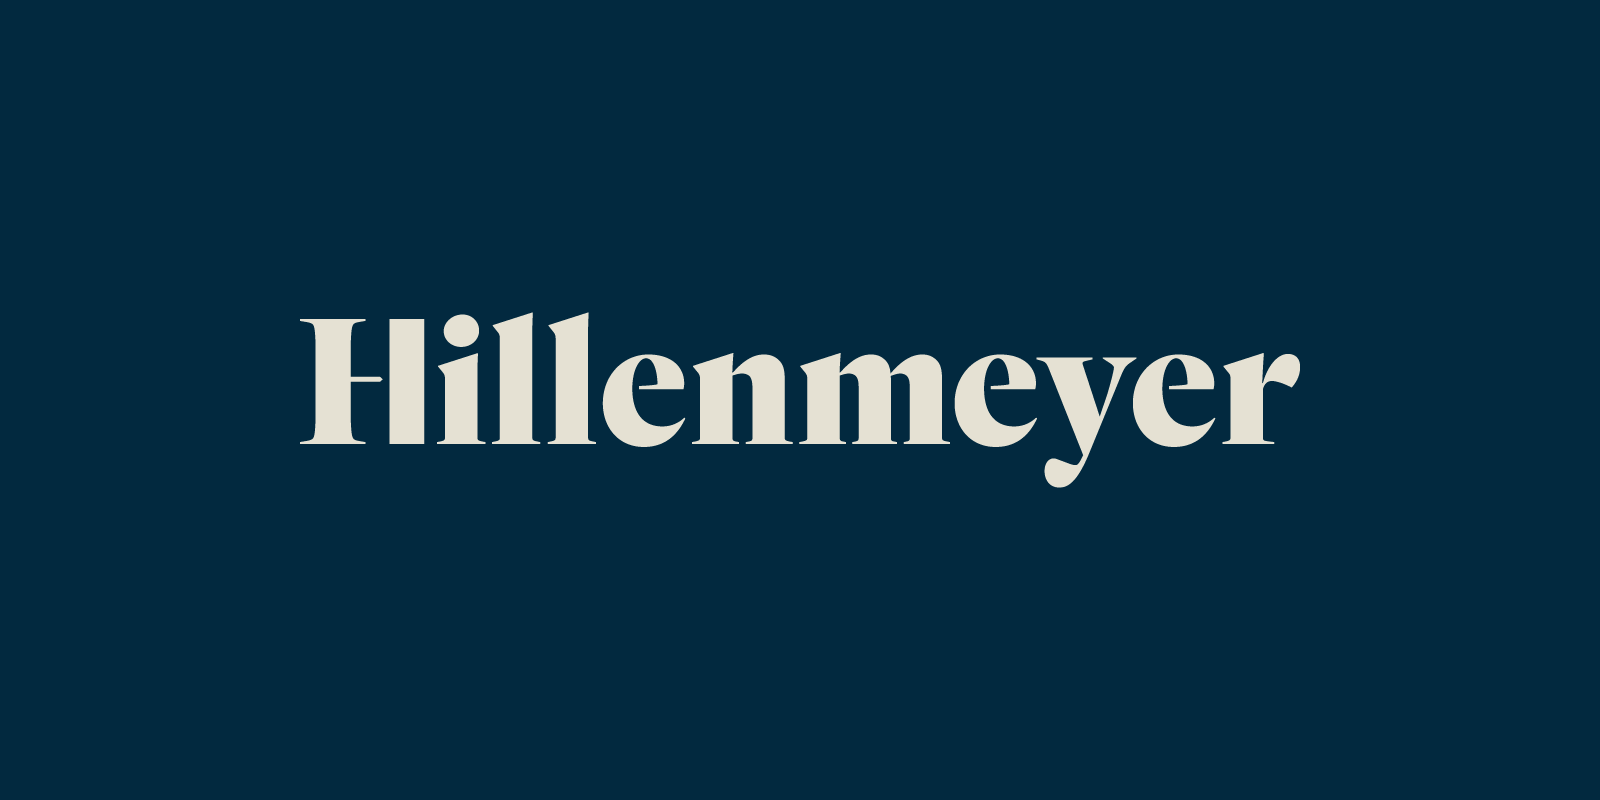 Brand Identity for Hillenmeyer Landscaping By Bullhorn Creative